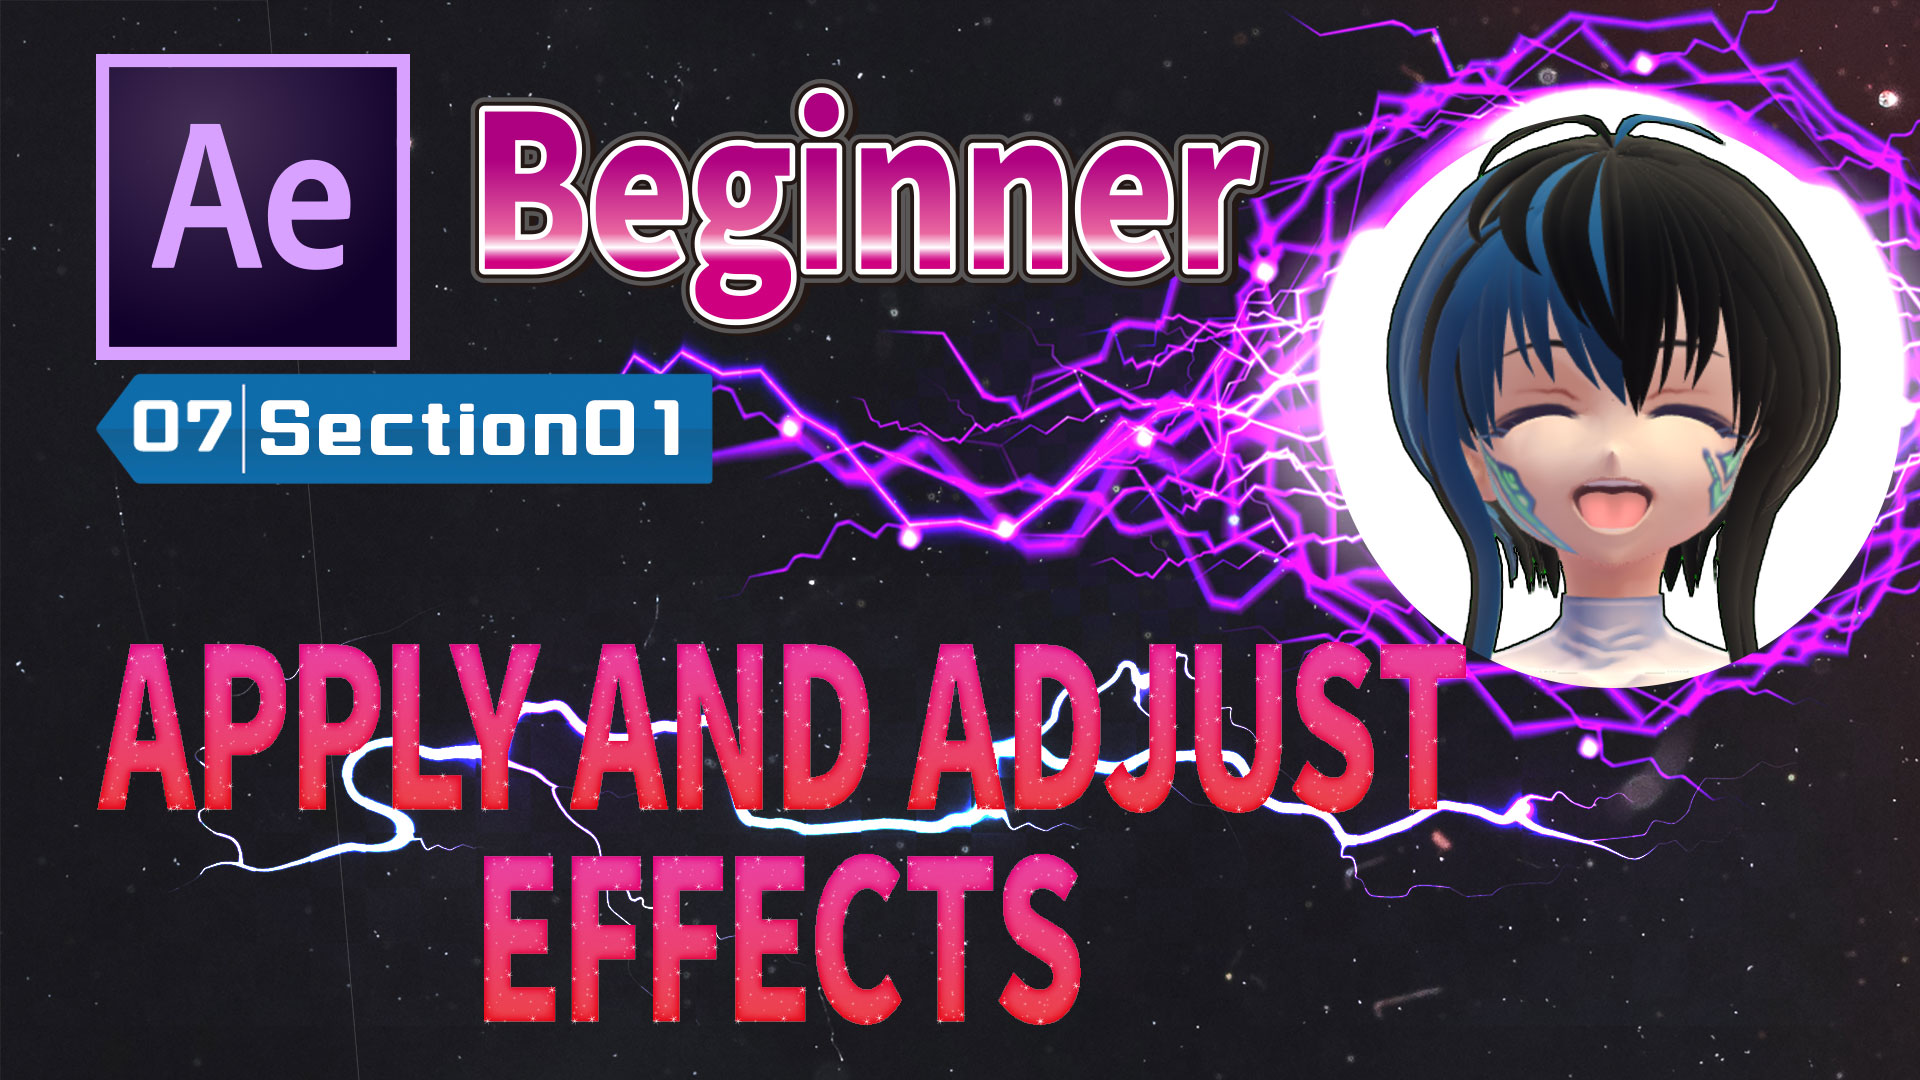 APPLY AND ADJUST EFFECTS